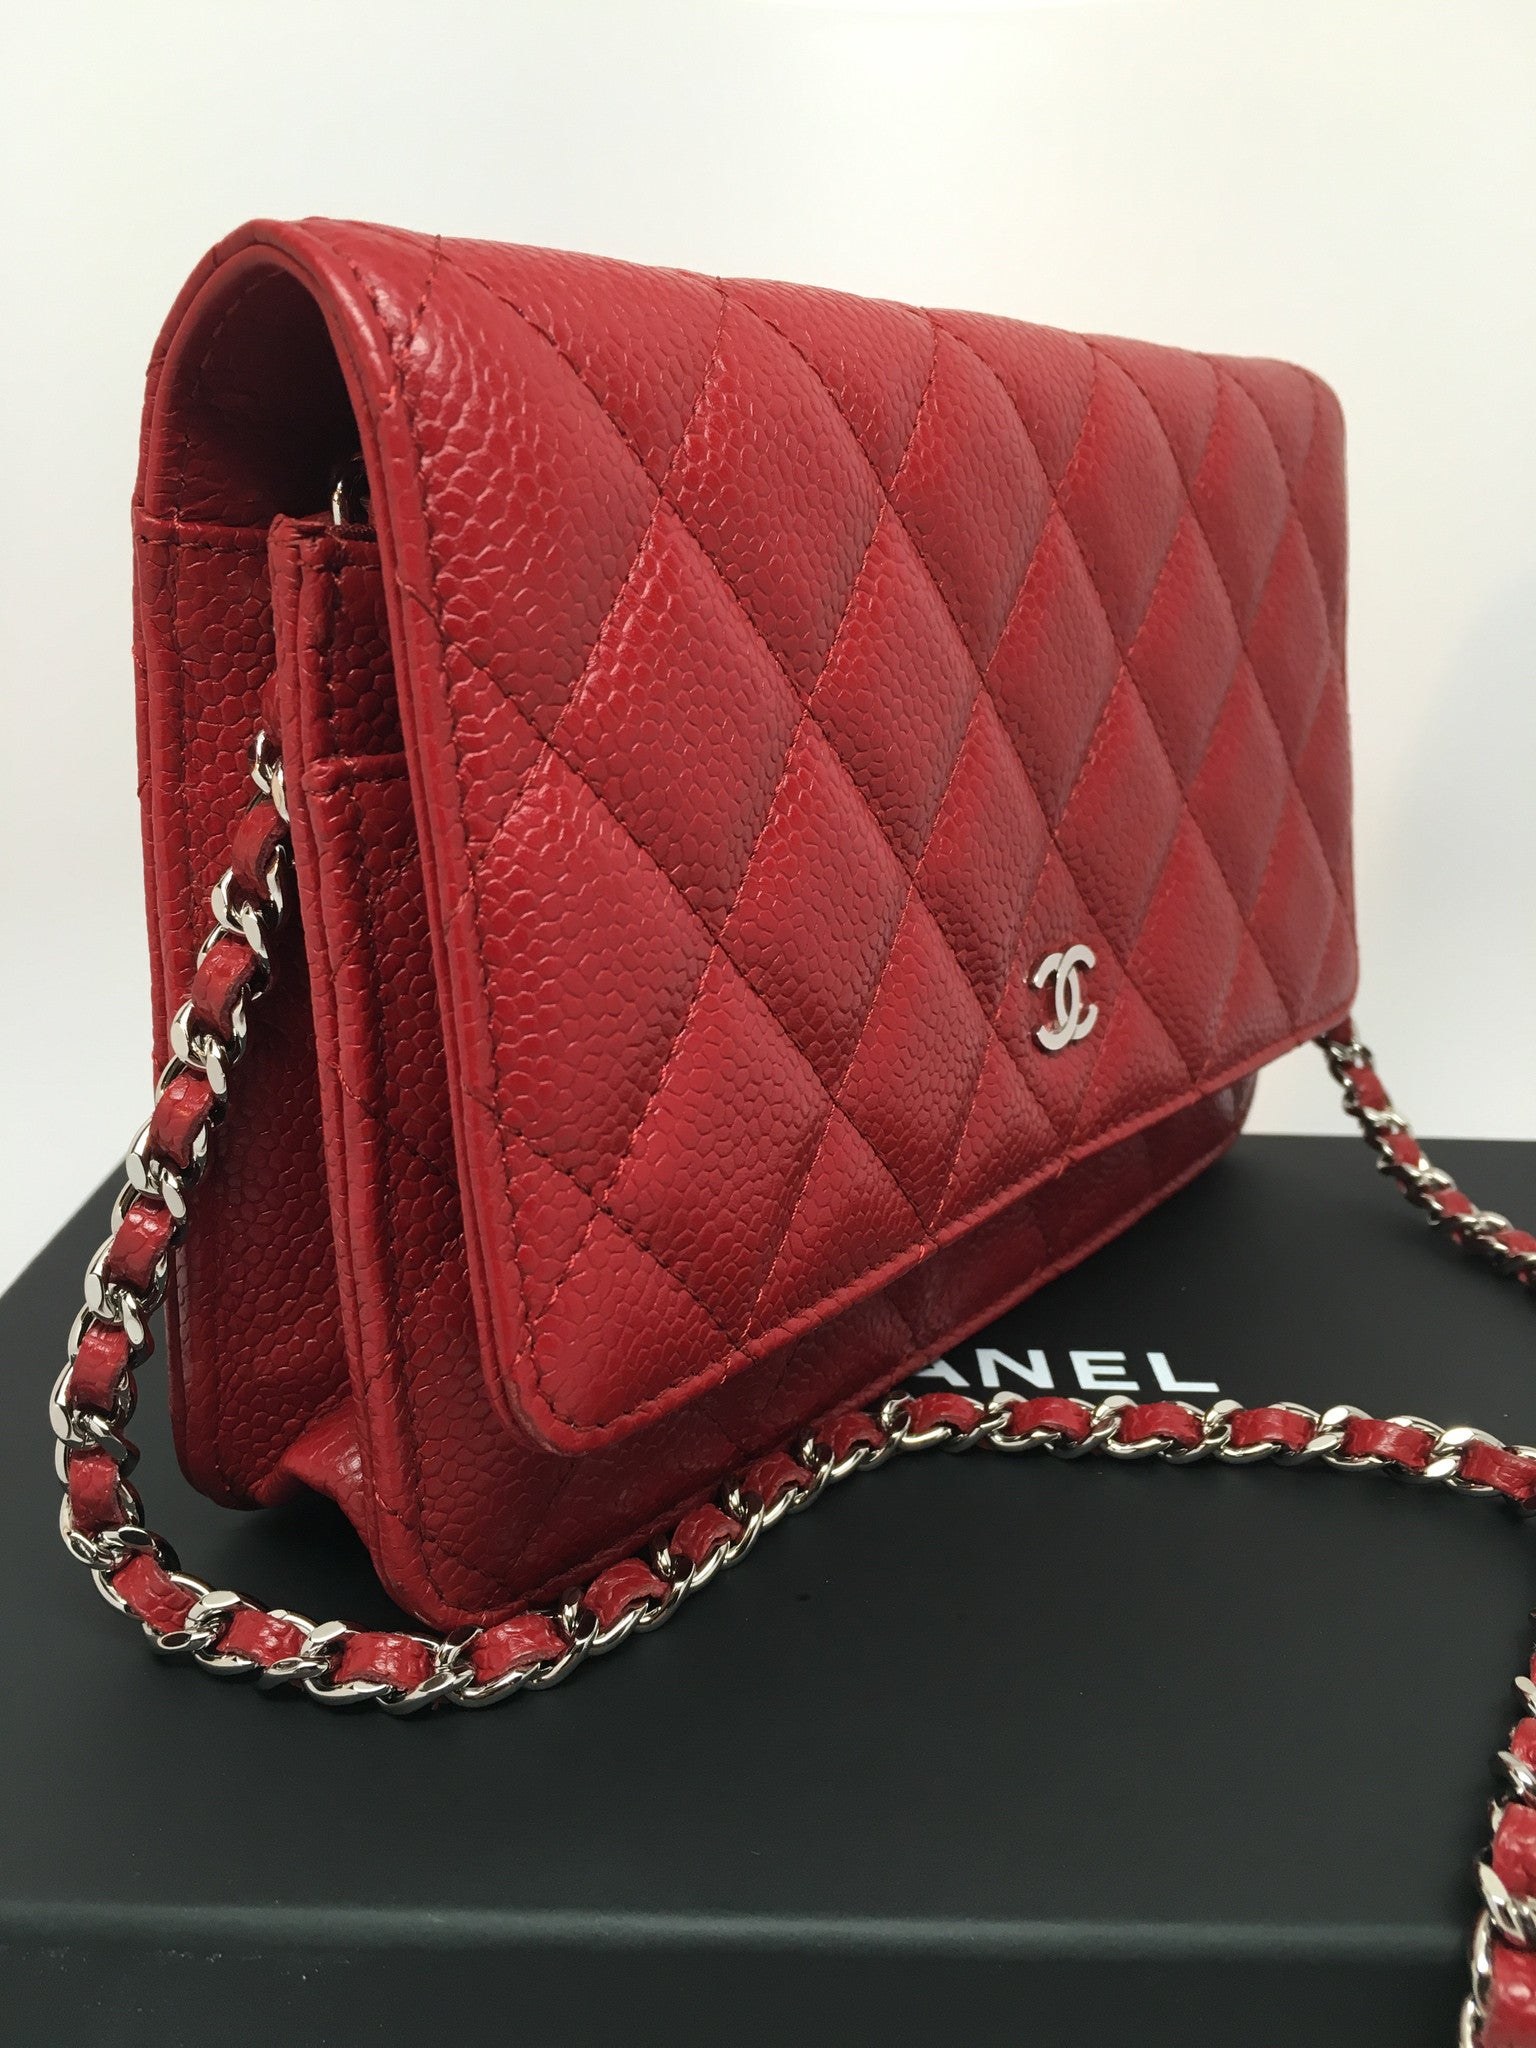 CHANEL CAVIAR WALLET ON CHAIN IN RED